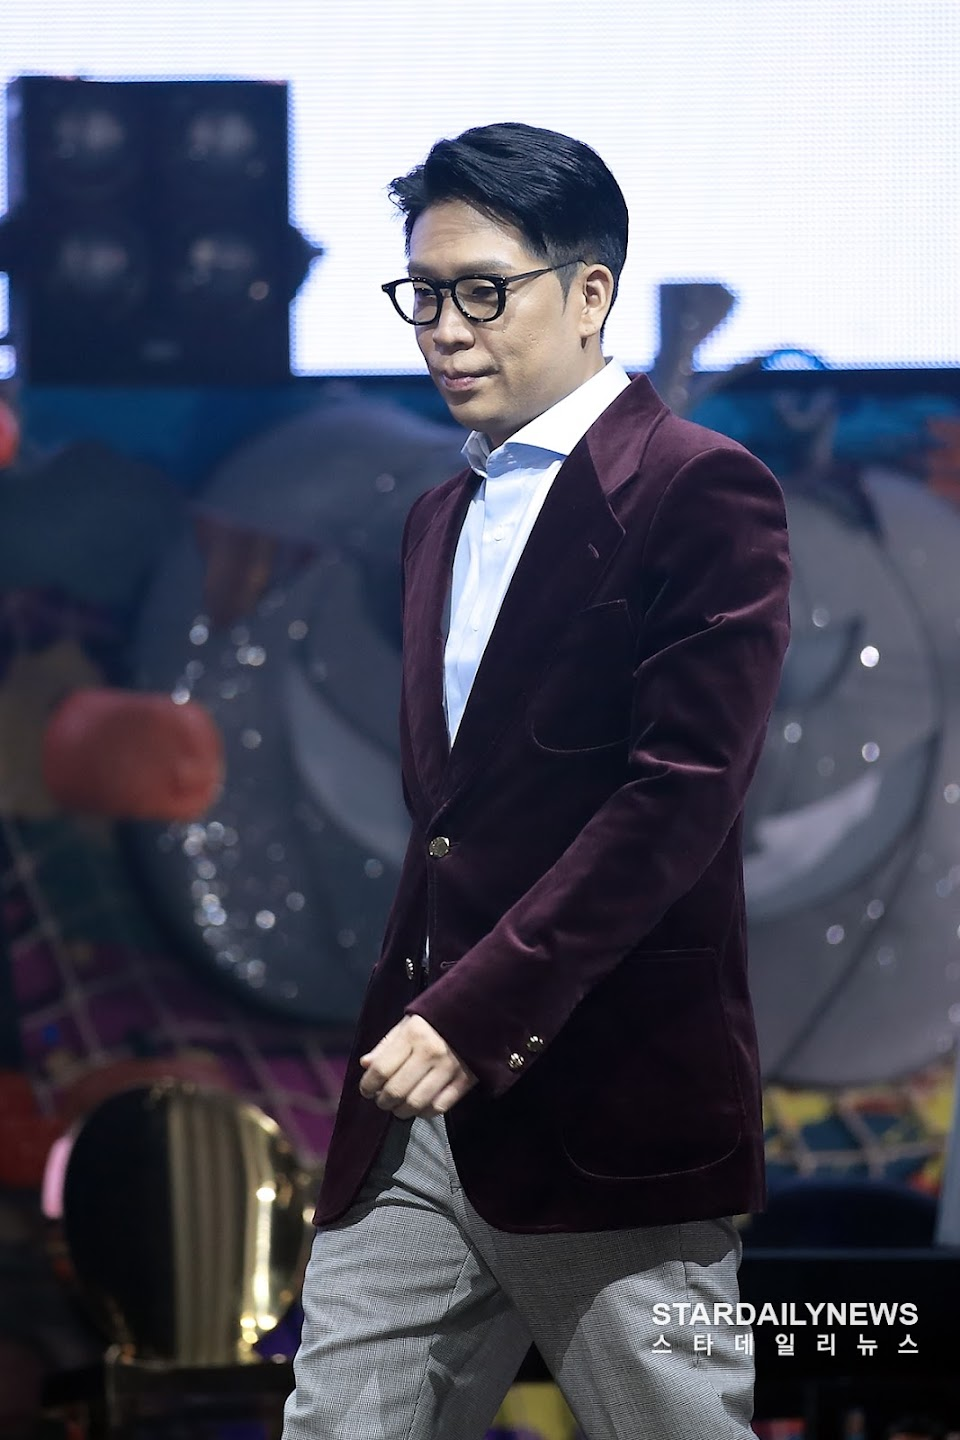 mc mong chart top